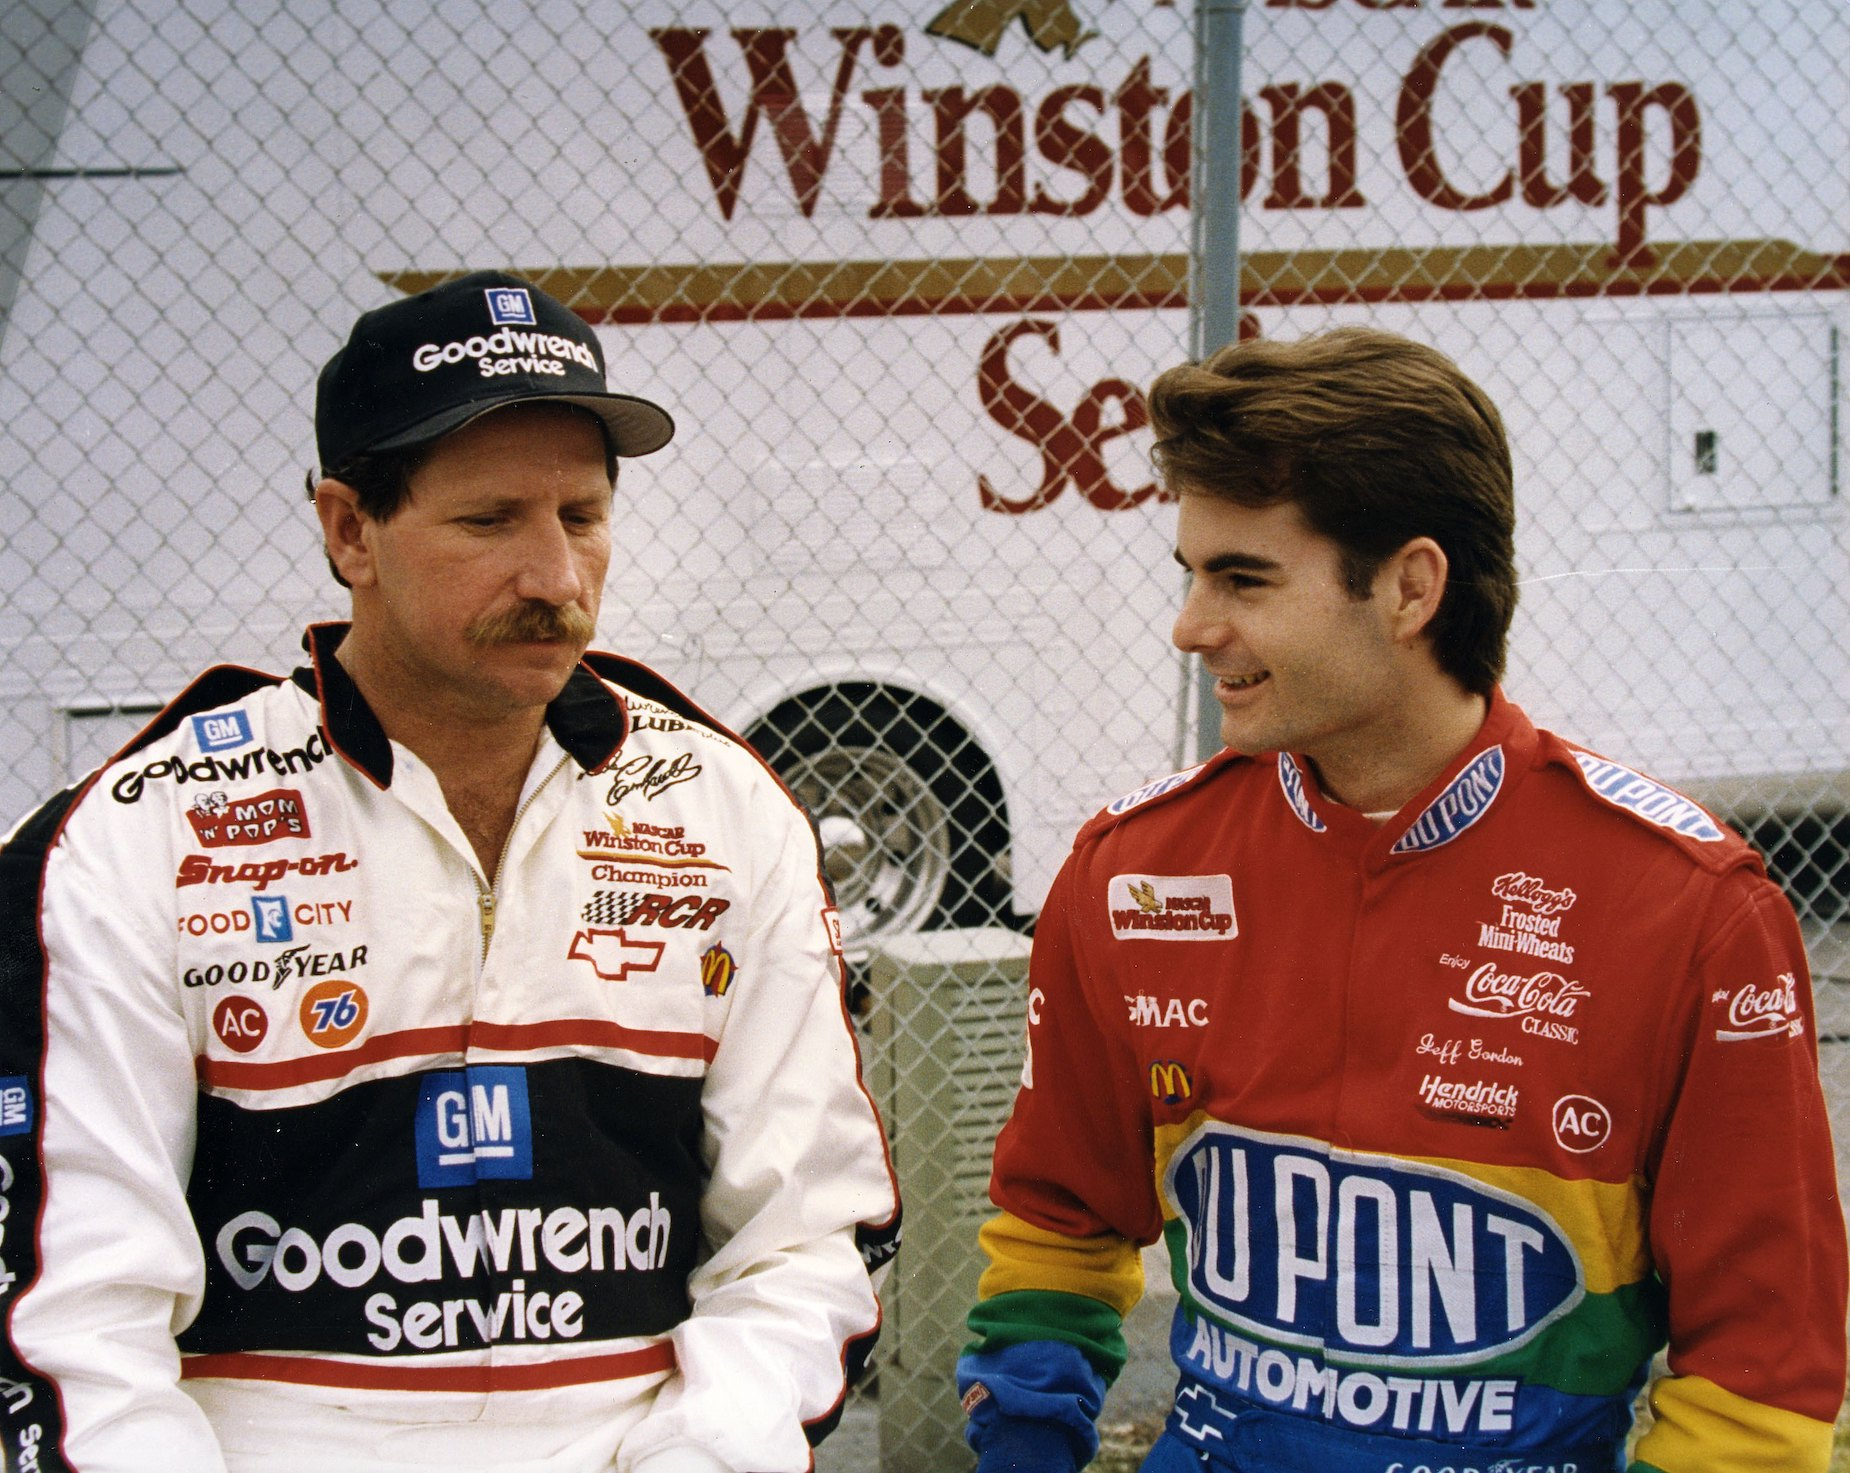 Dale Earnhardt (L) and Jeff Gordon (R) sit together at a race track during the 1990s.